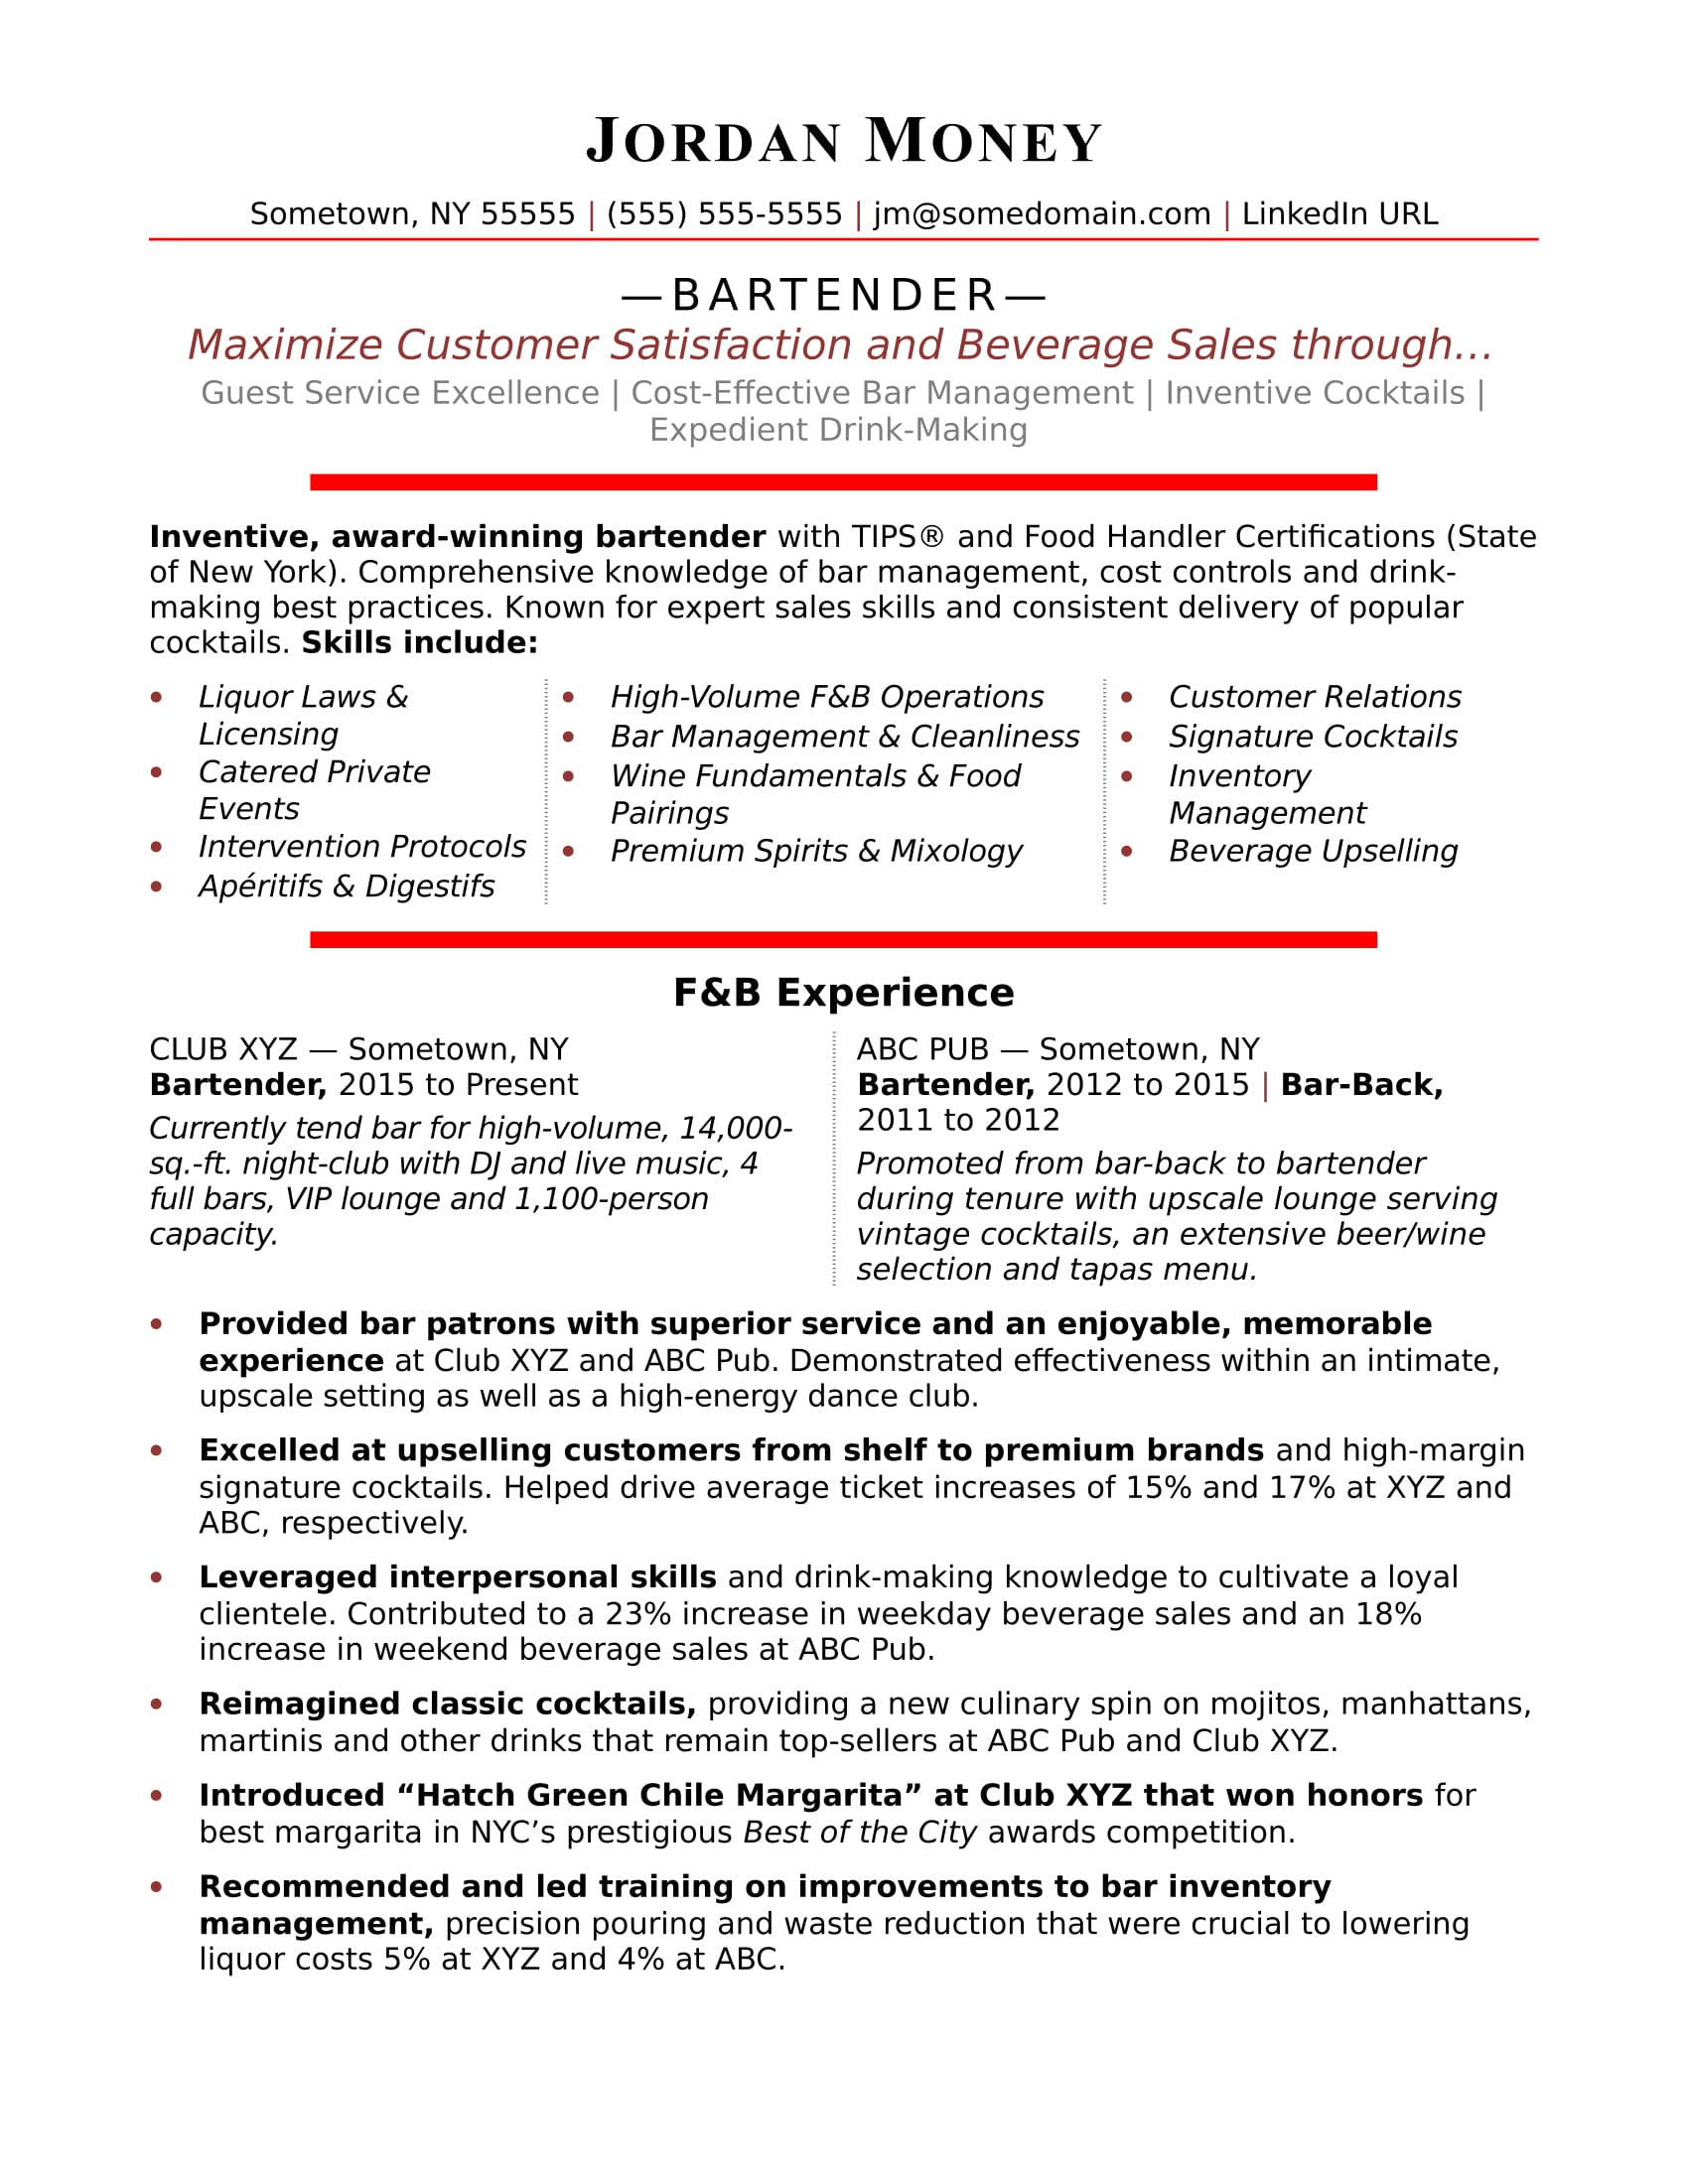 Exceptional Bartender Resume Sample In Bartender Resume Templates